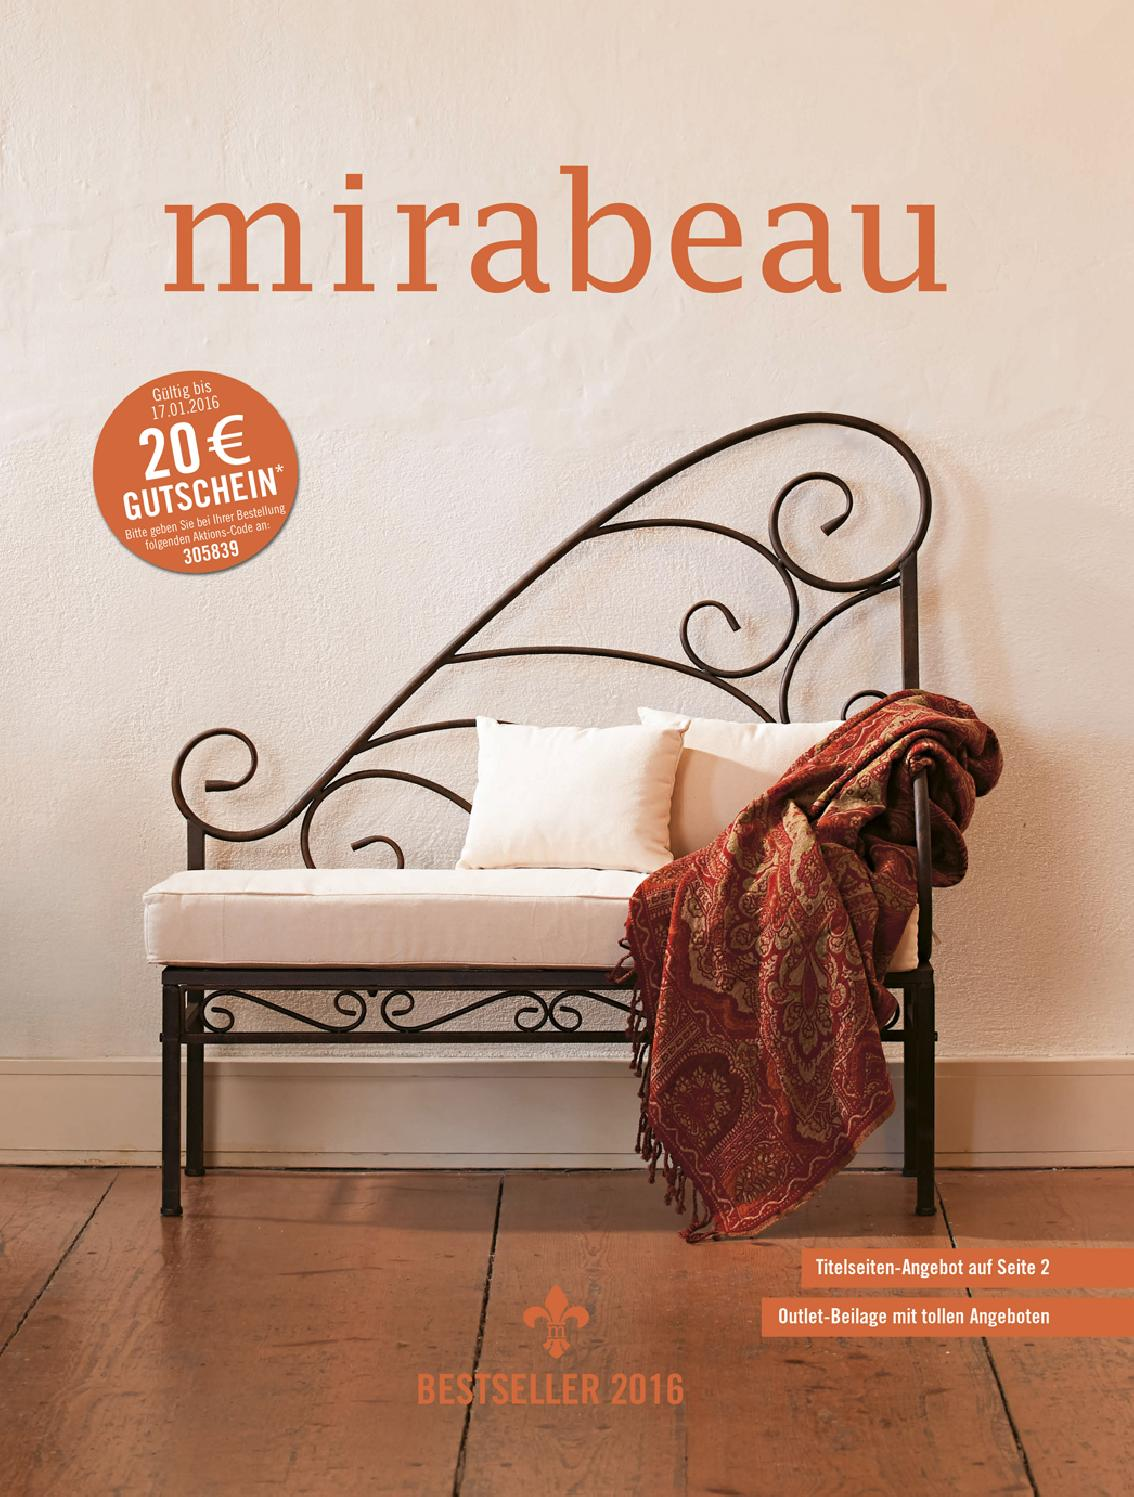 Каталог Mirabeau весна 2016 By Prestige Issuu